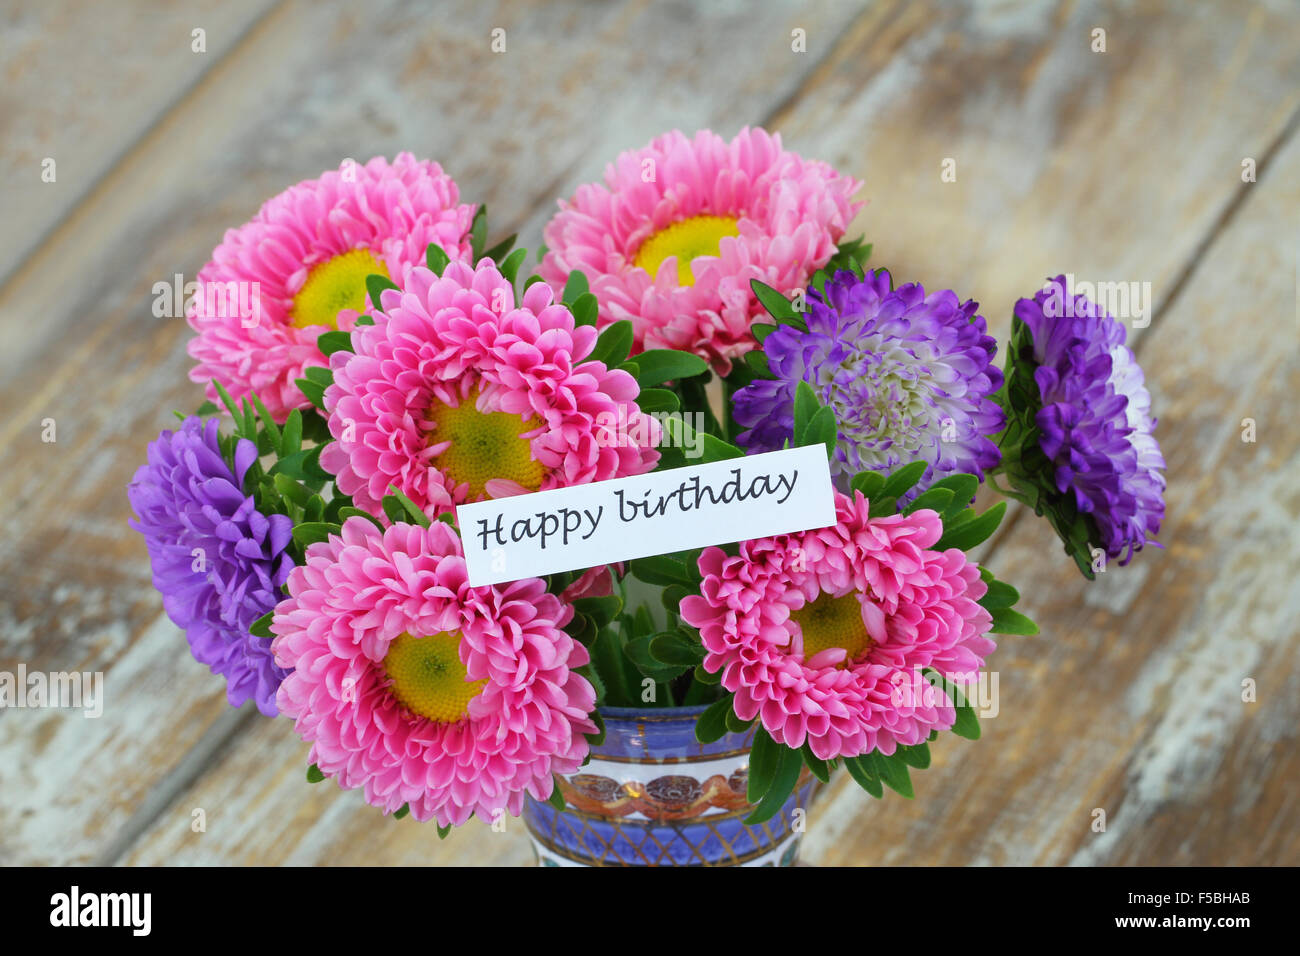 happy birthday card with colorful aster flower bouquet on rustic wooden surface